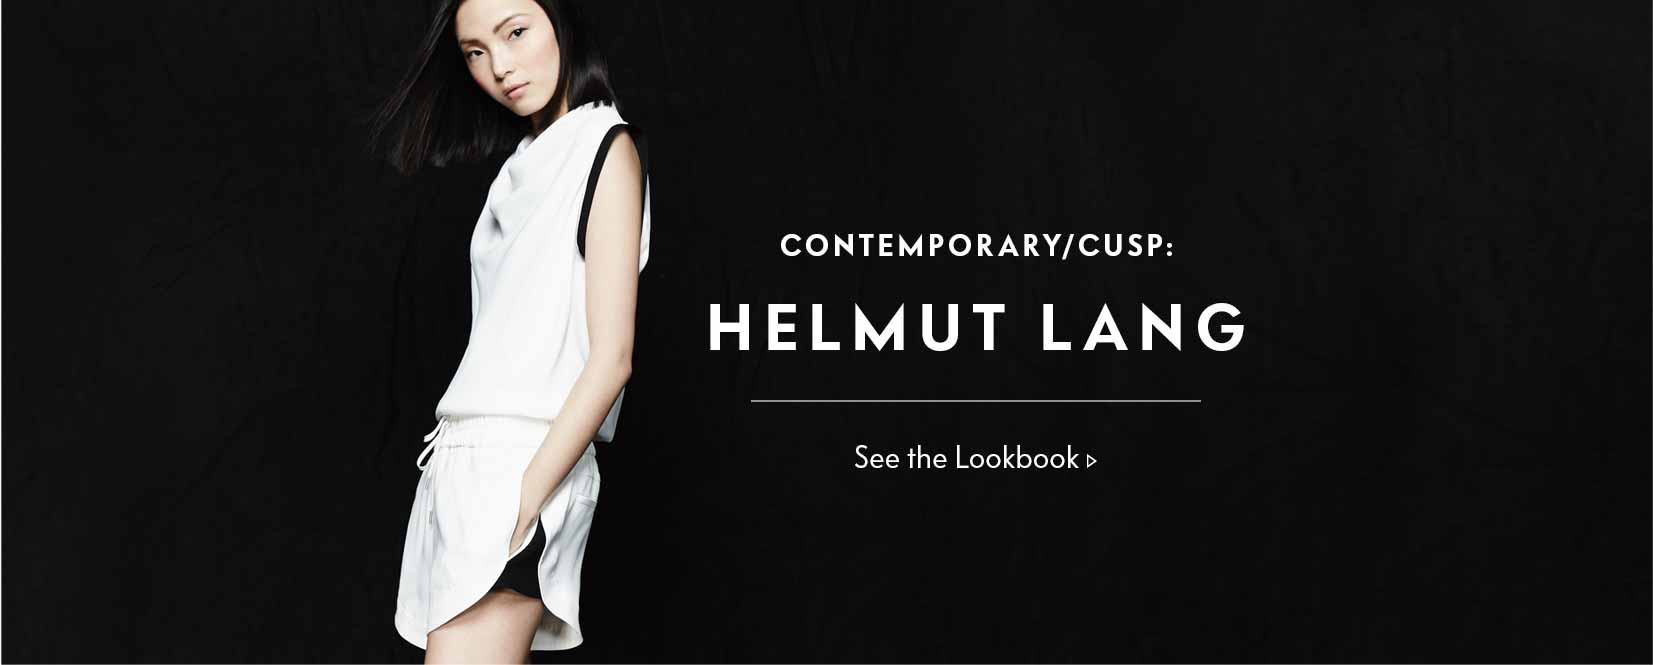 Contemporary/CUSP: Helmut Lang